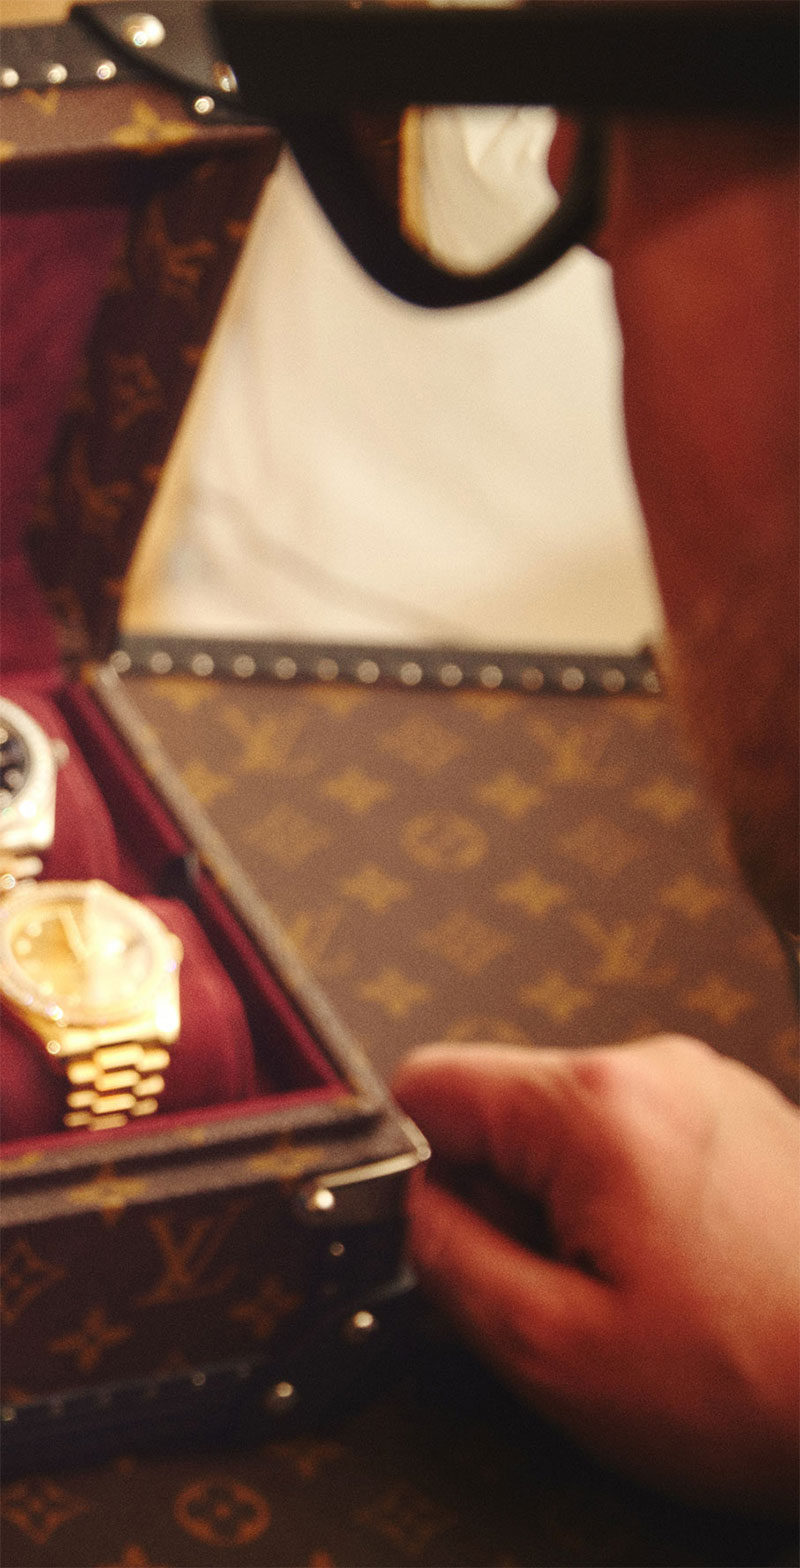 Christopher King with Louis Vuitton Watch Case